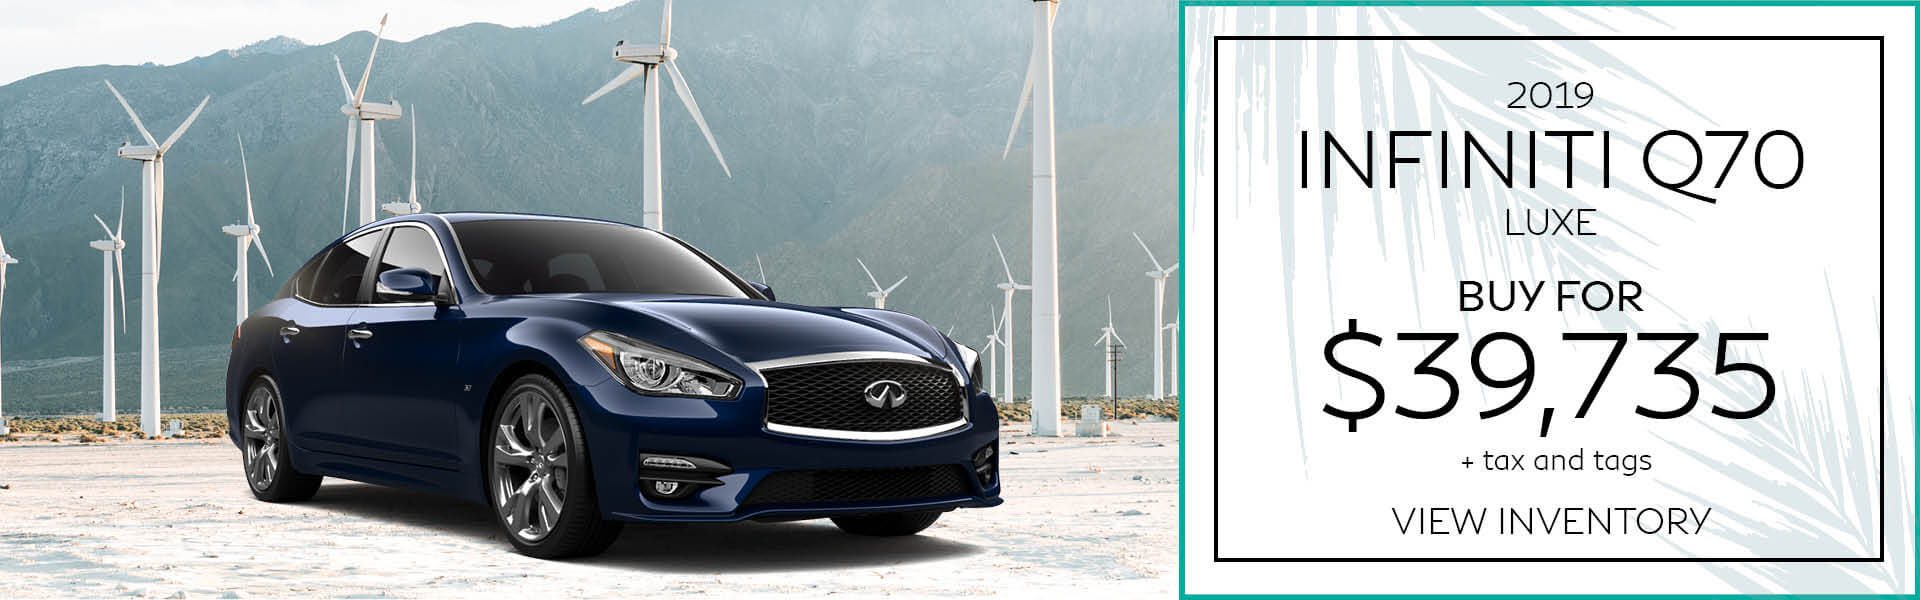 Q70 - Buy for $39,735